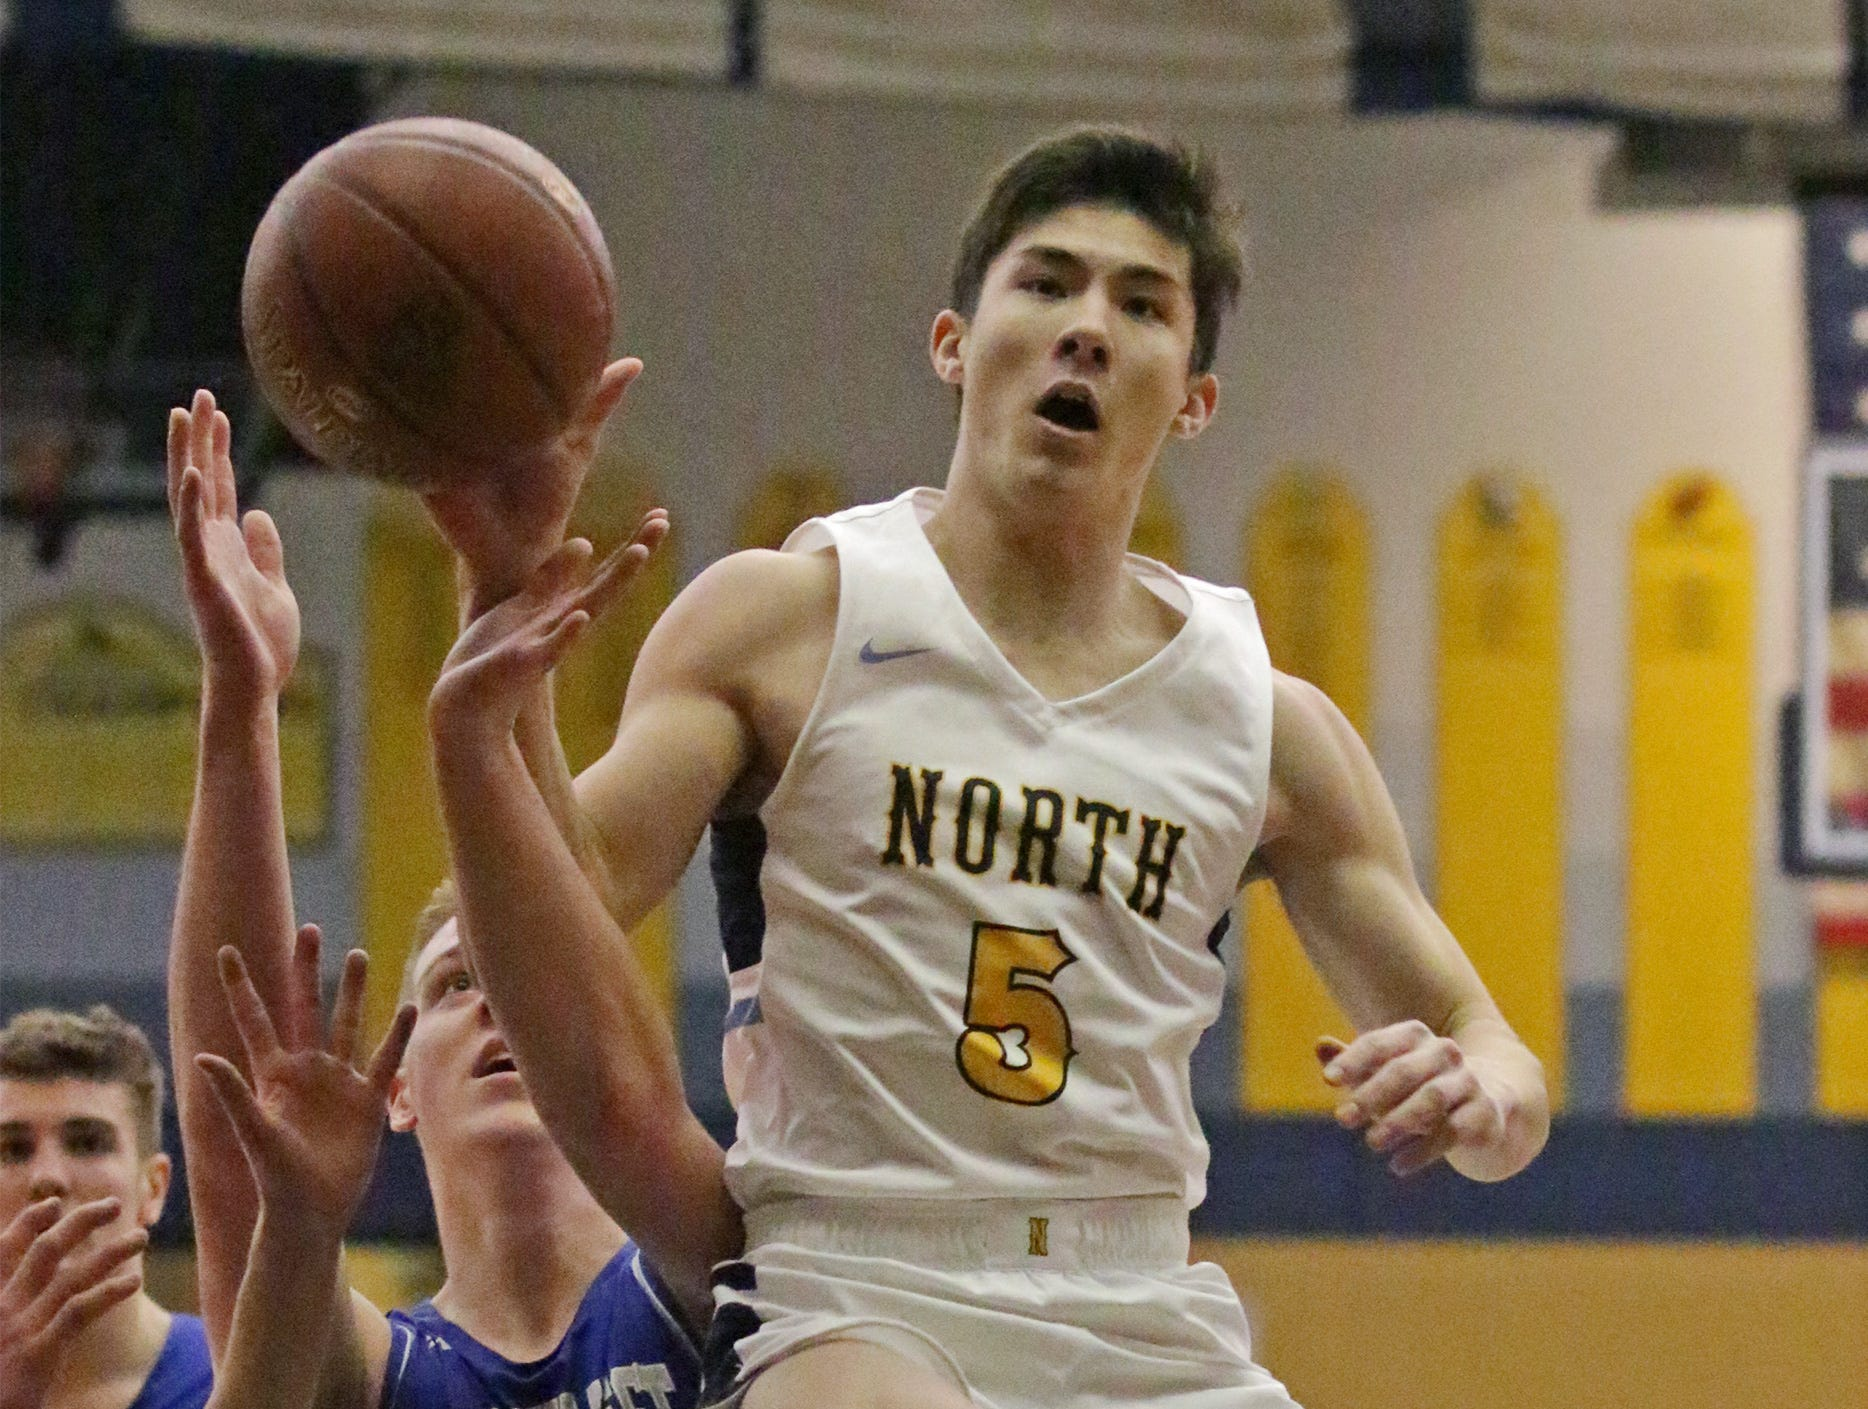 Sheboygan North's Austin Thyes (5) is airborne as he works to rebound the ball against Green Bay Southwest, Tuesday, February 5, 2019, in Sheboygan, Wis.